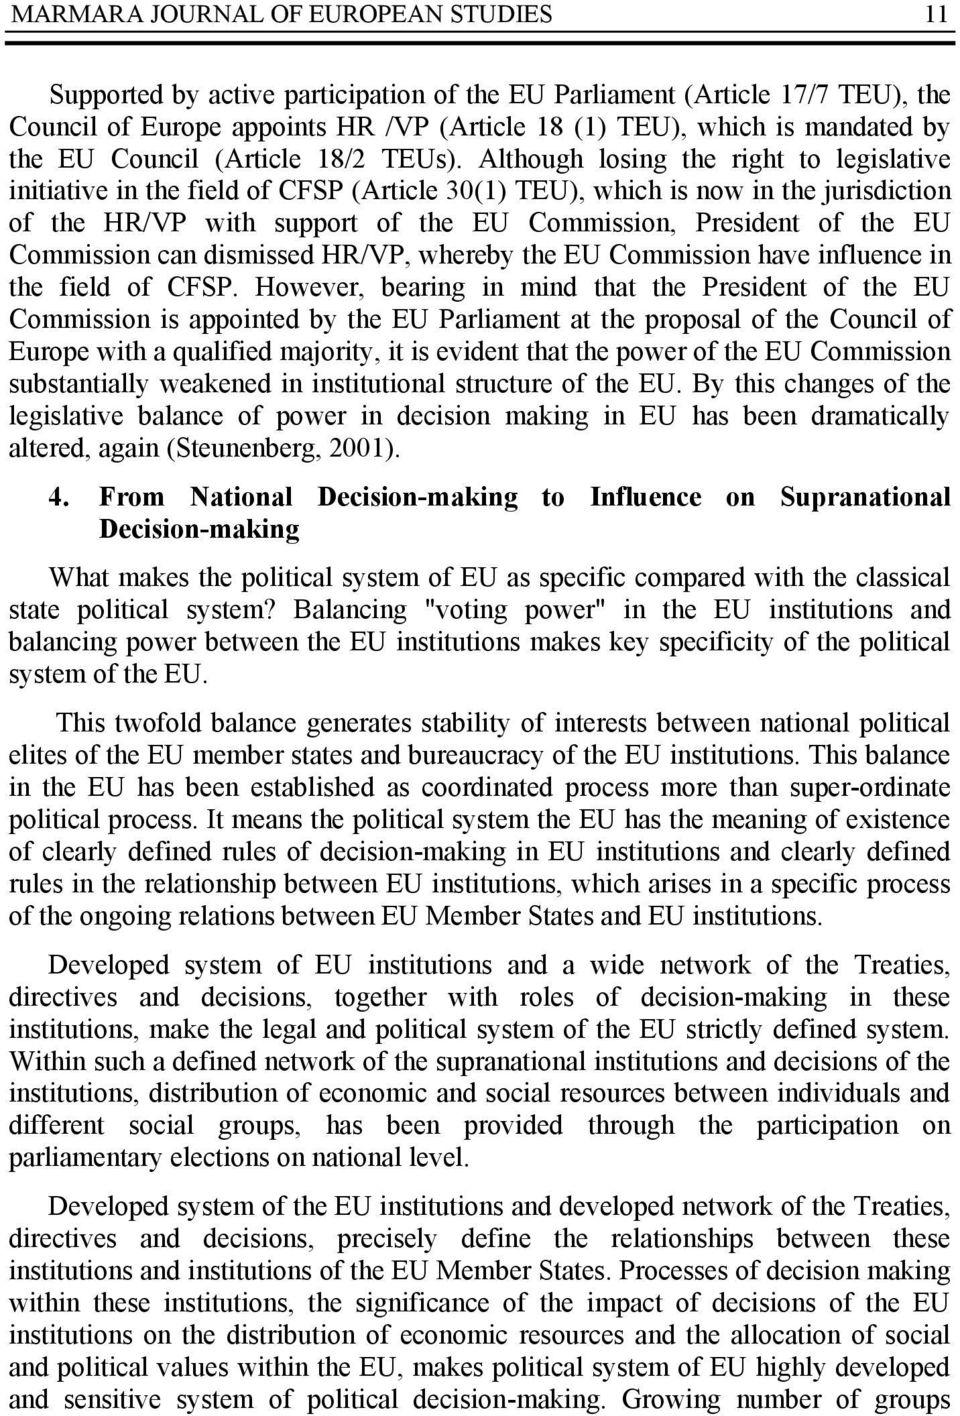 Although losing the right to legislative initiative in the field of CFSP (Article 30(1) TEU), which is now in the jurisdiction of the HR/VP with support of the EU Commission, President of the EU